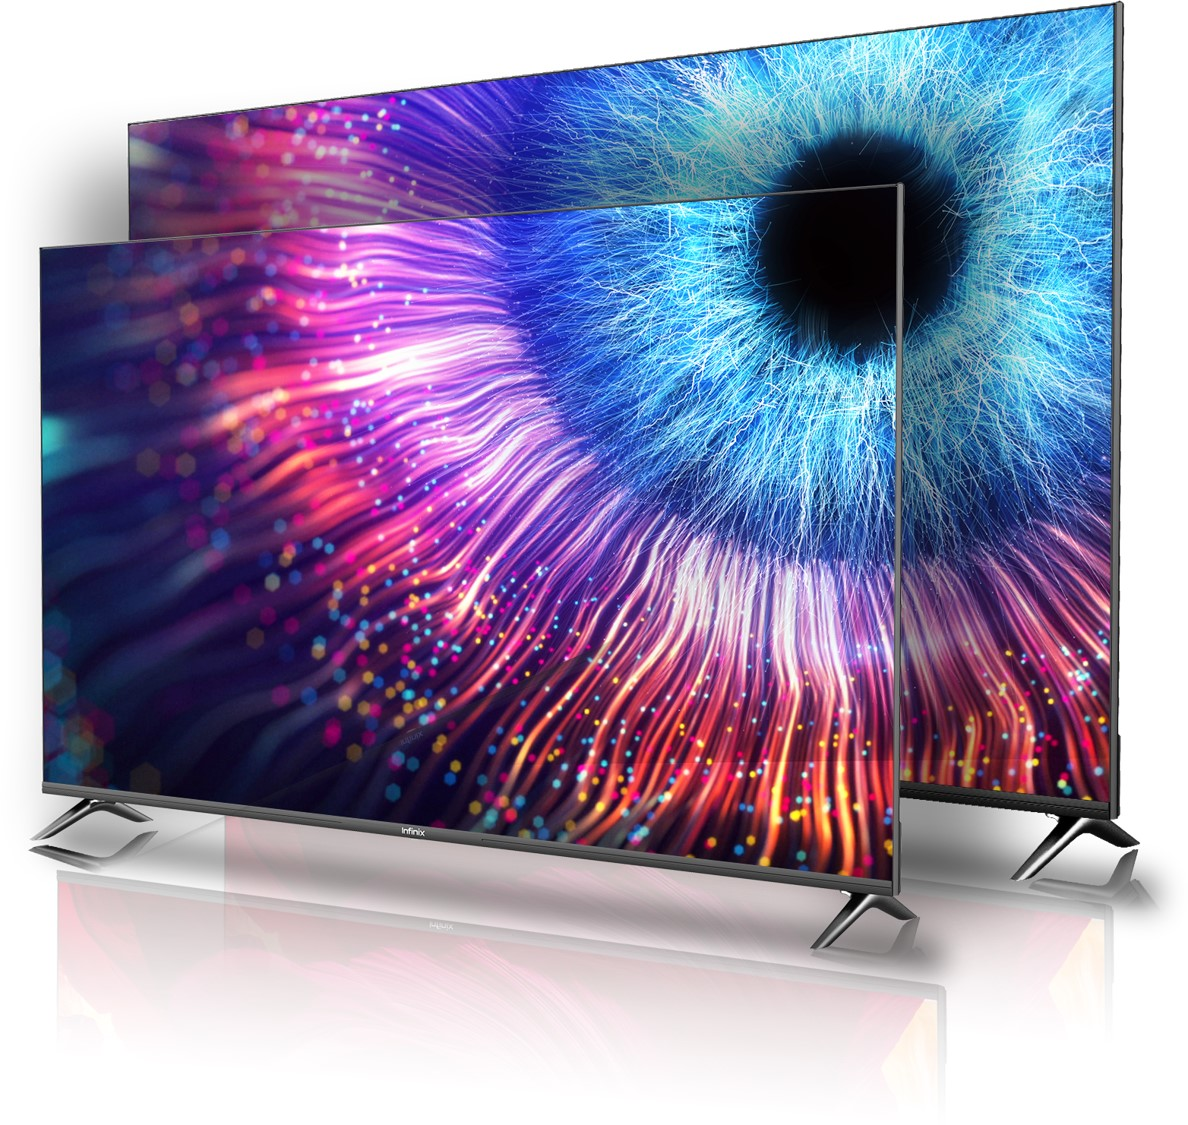 Infinix offers attractive deals on Smart Android TVs at Flipkart